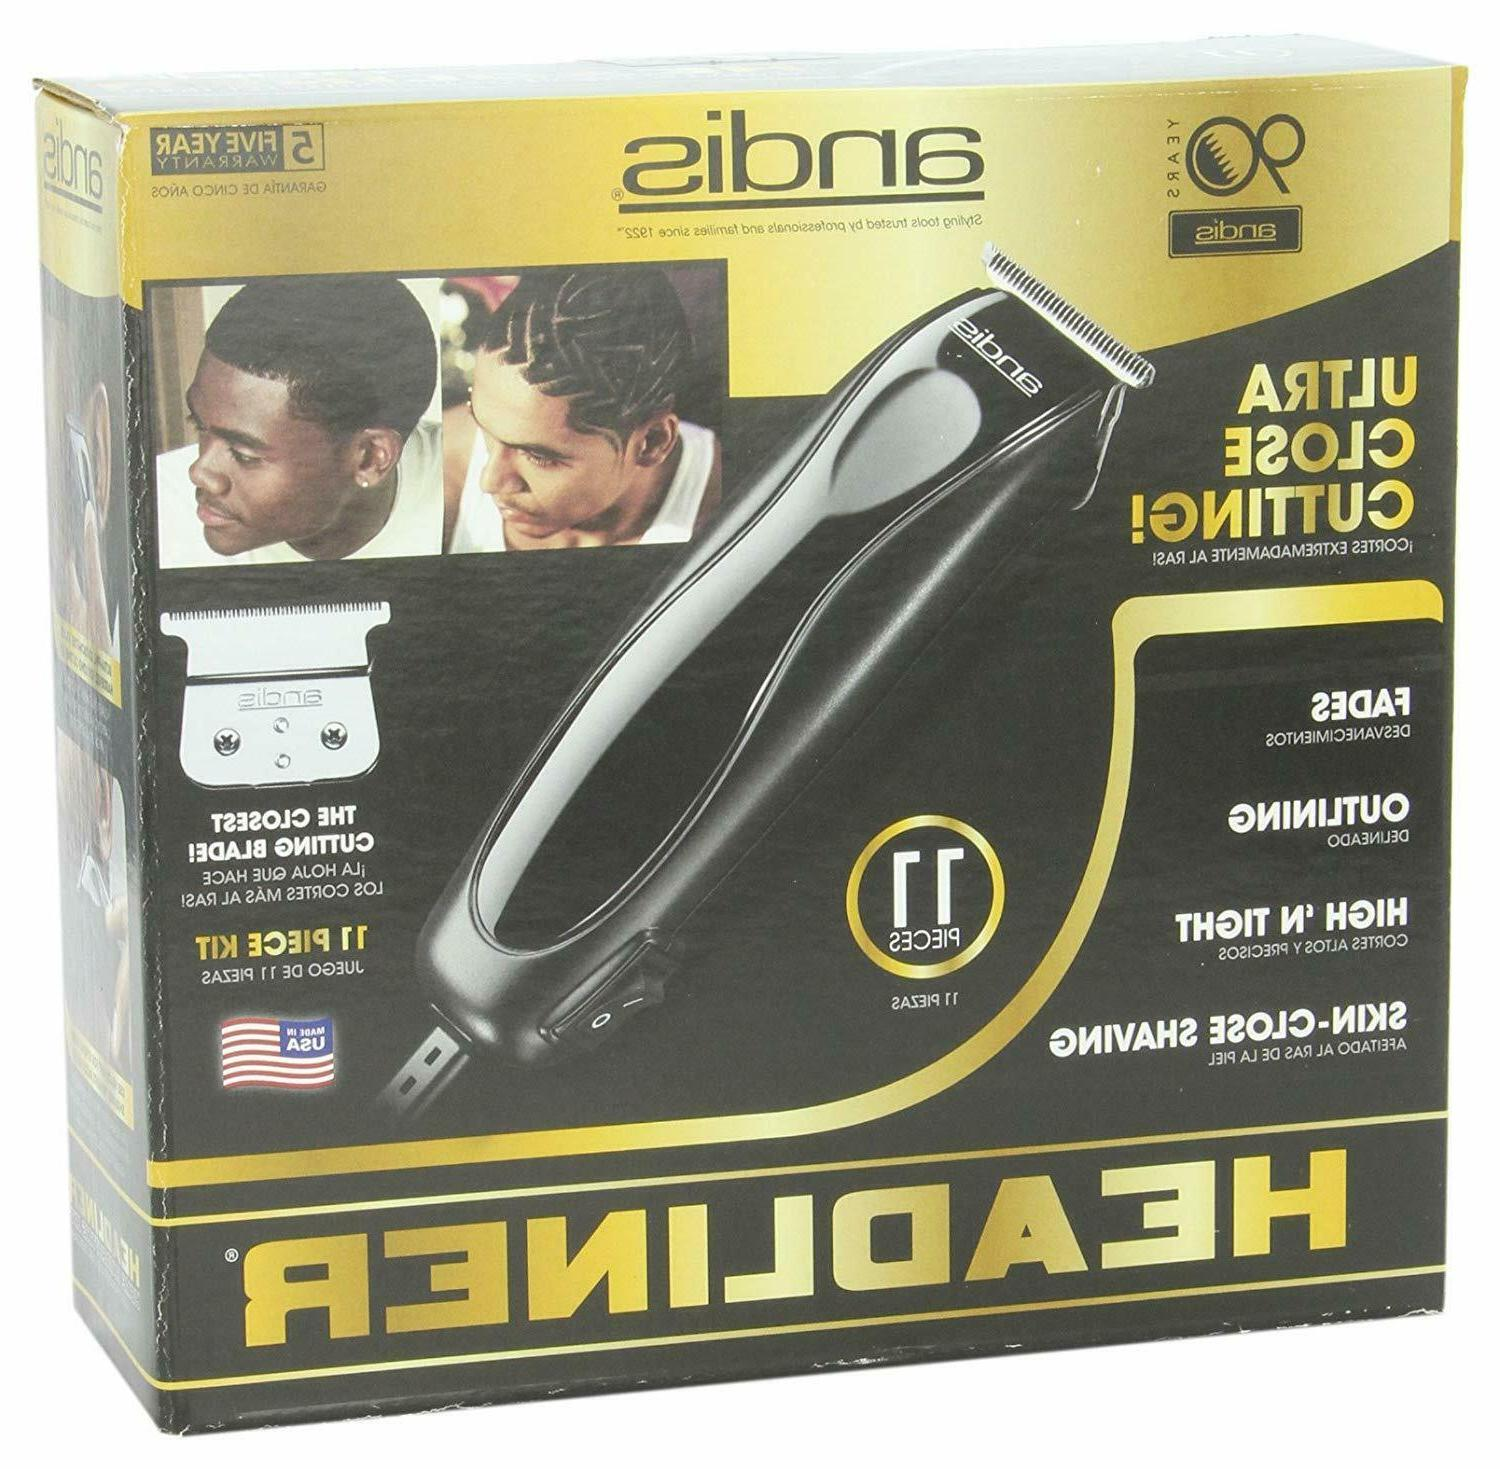 Andis Trimmer Barber Cut Clippers